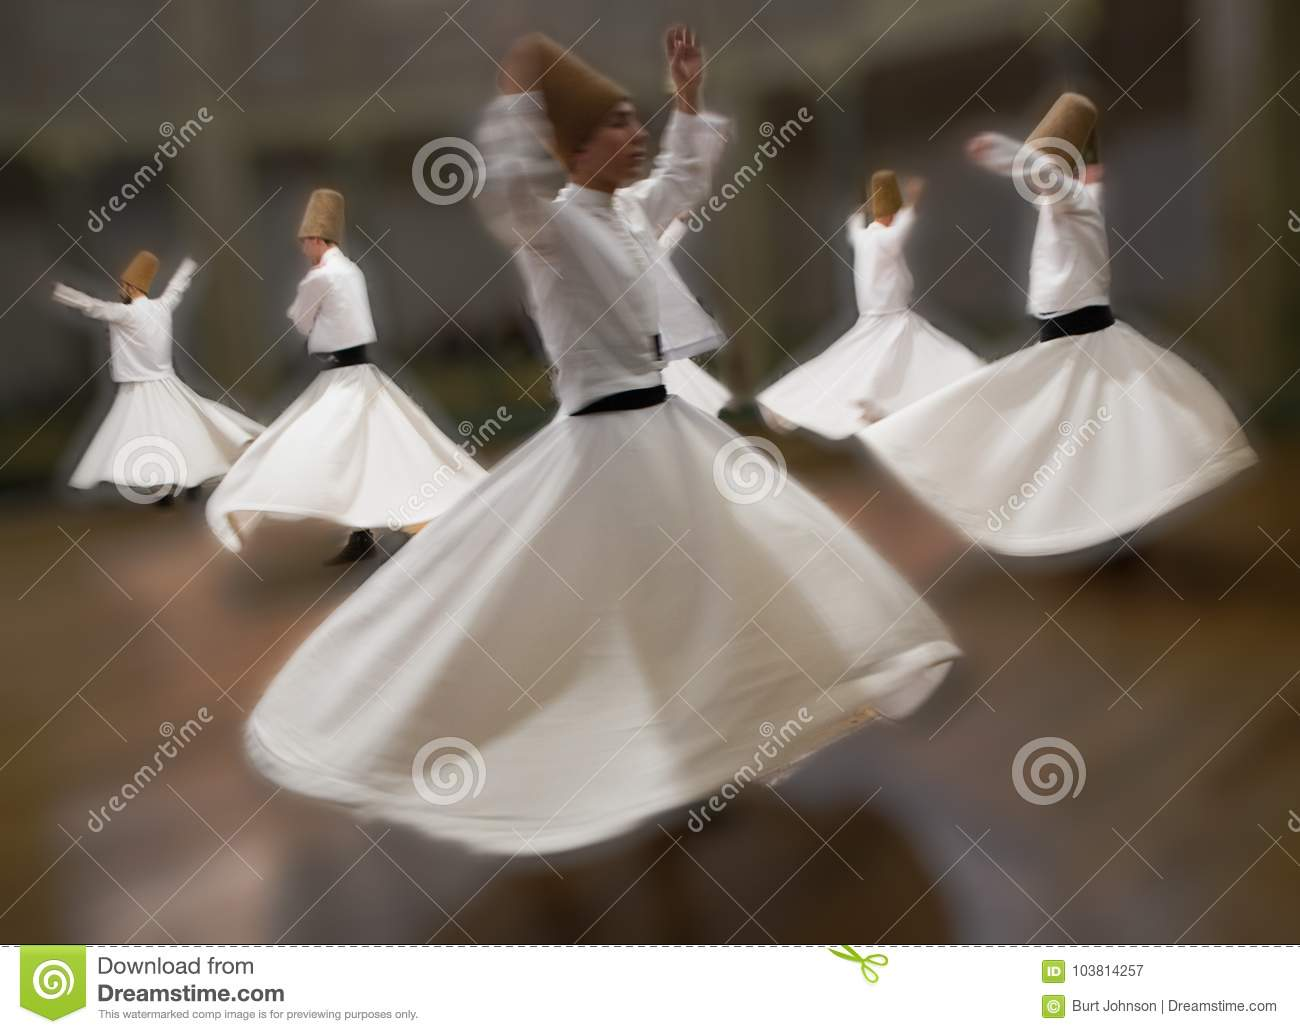 Whirling Dervishes practice their dance